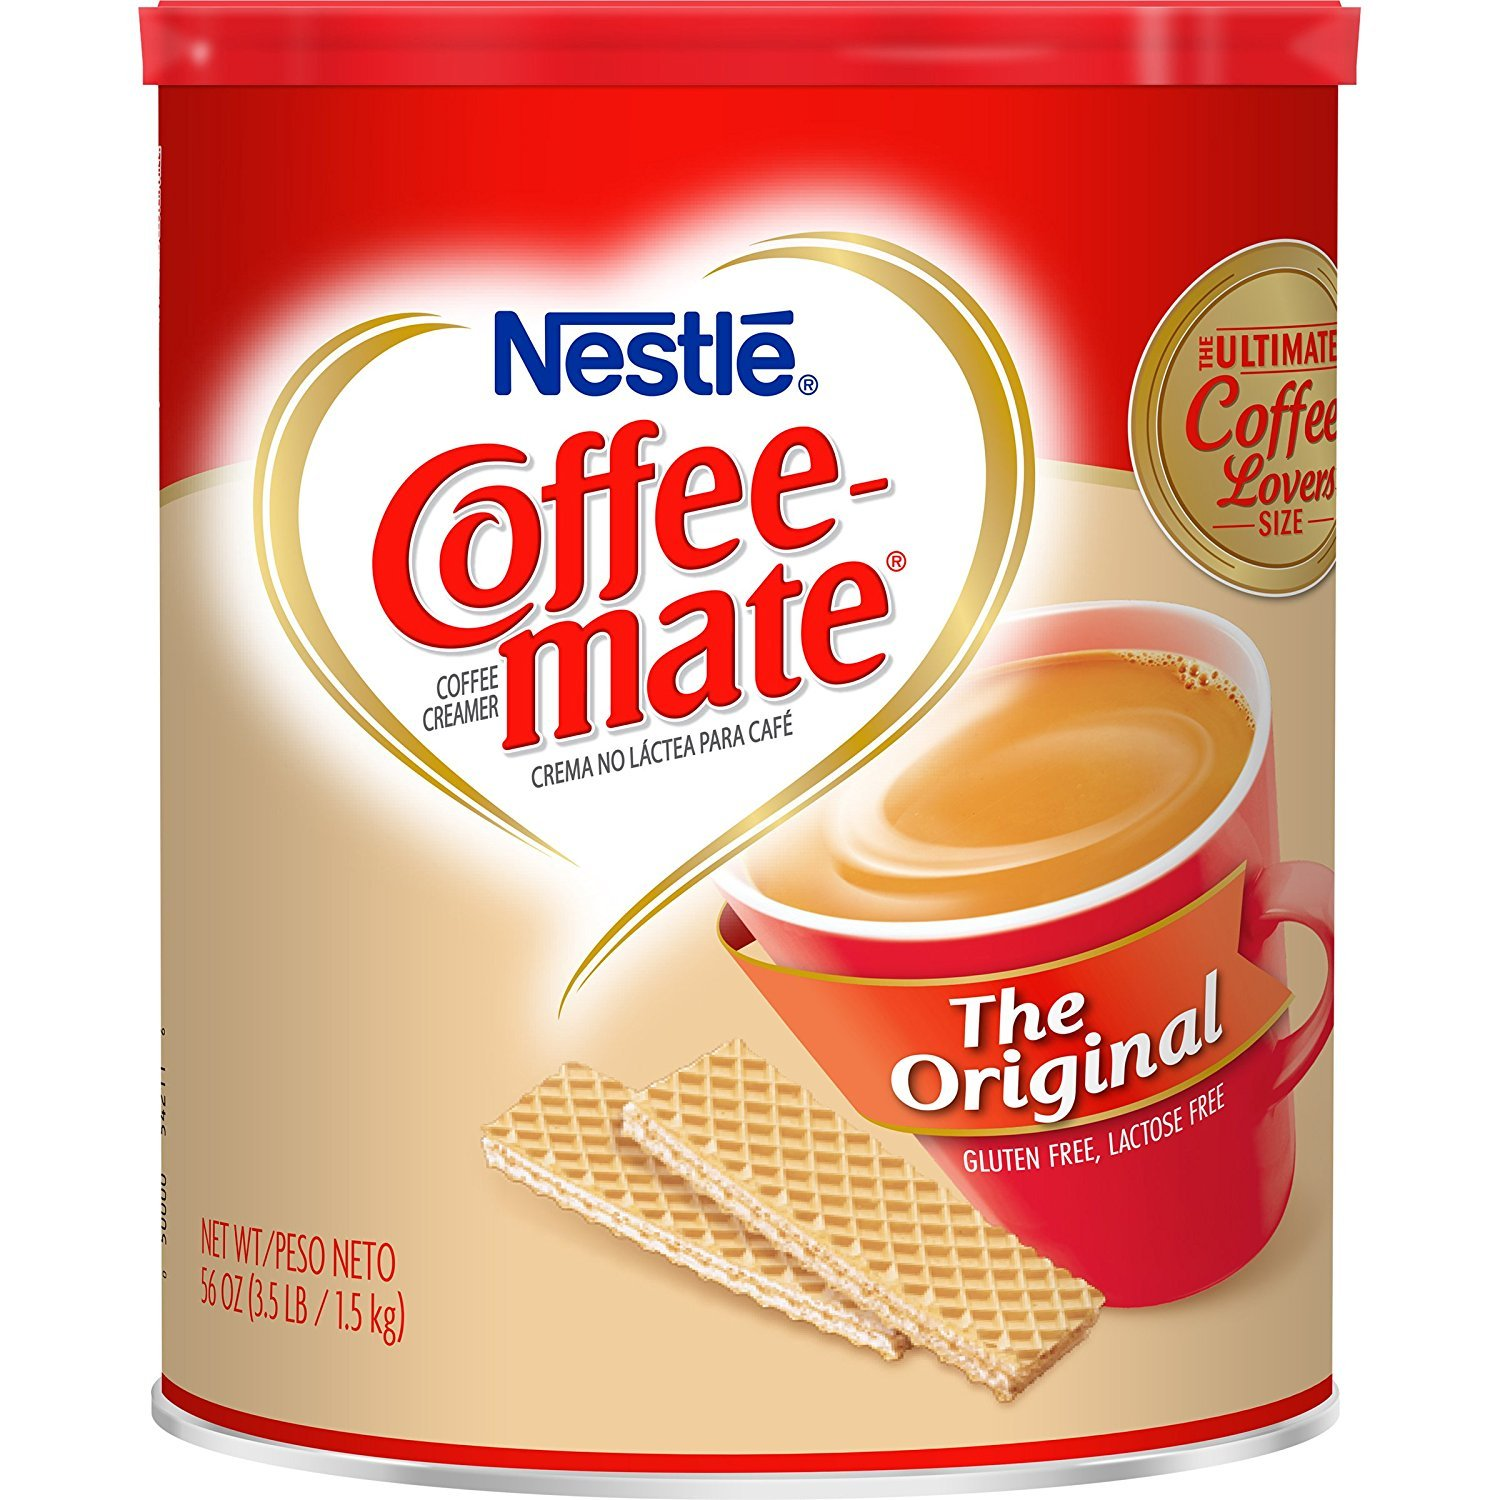 Nestle Coffee-mate Coffee Creamer 56oz. Canister (6 Pack) by Nestle (Image #2)